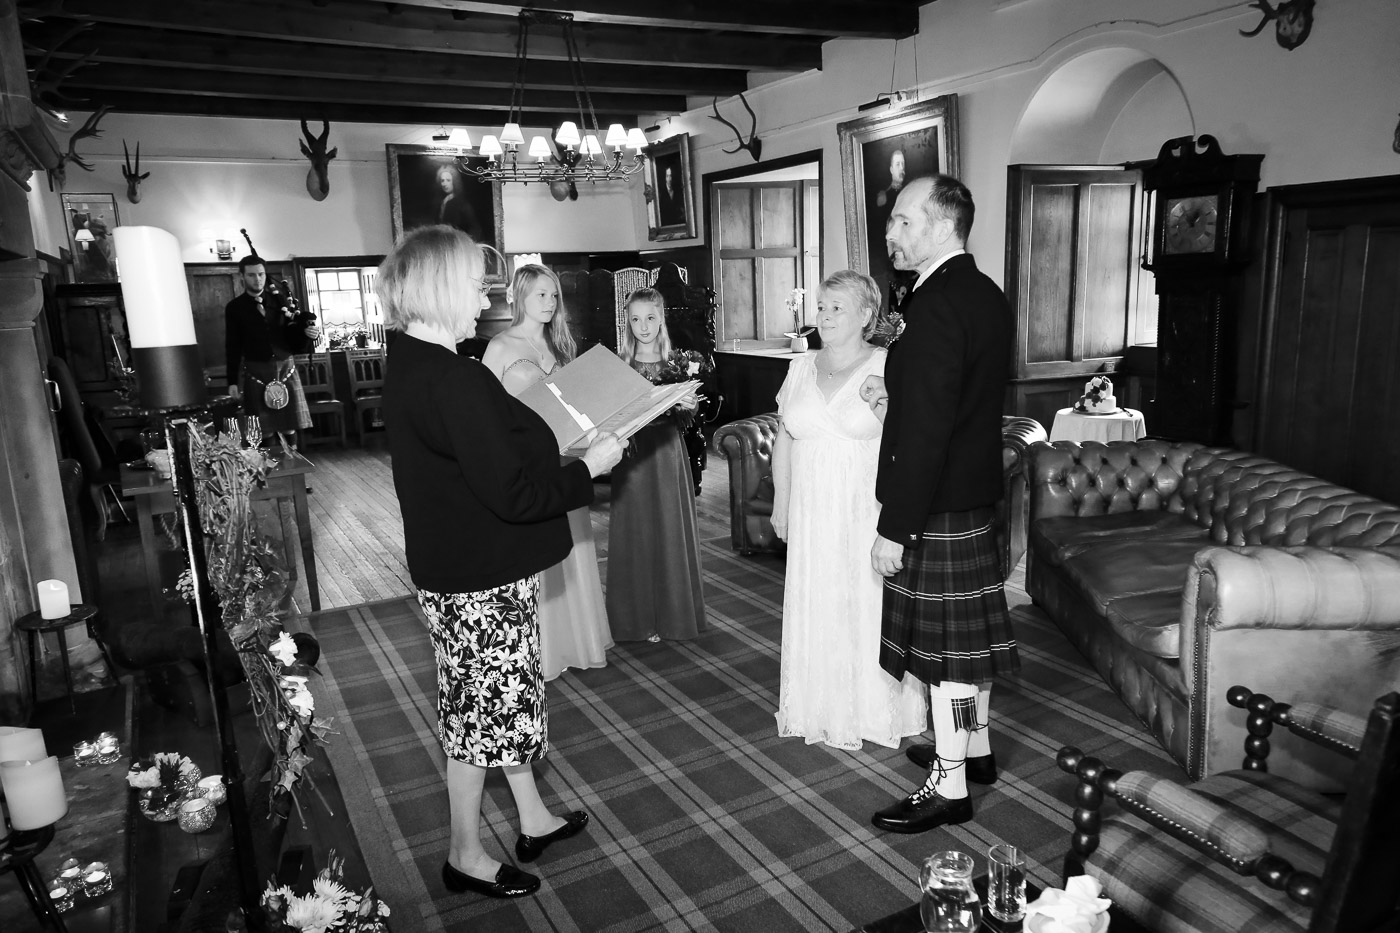 wedding-photography-at-barcaldine-castle-argyll-2864-2